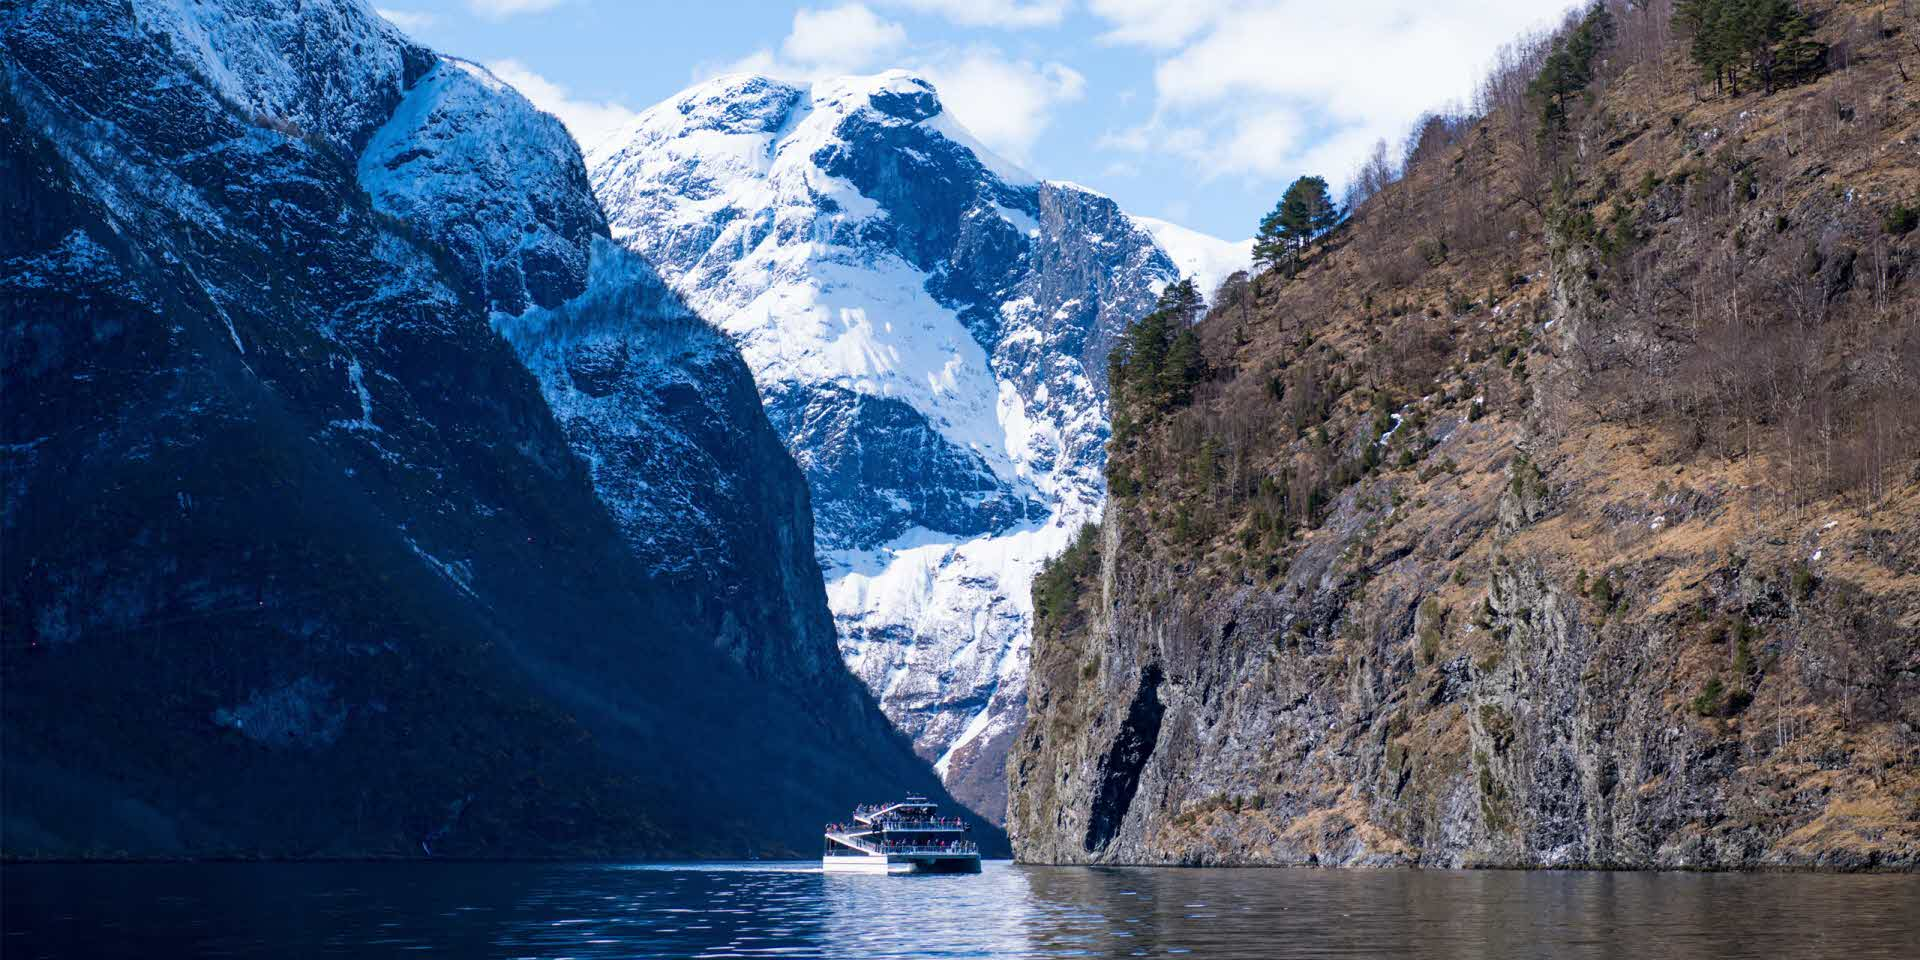 Future of The Fjords sailing on the Nærøyfjord in late winter with snow capped mountain behing and people standing on deck